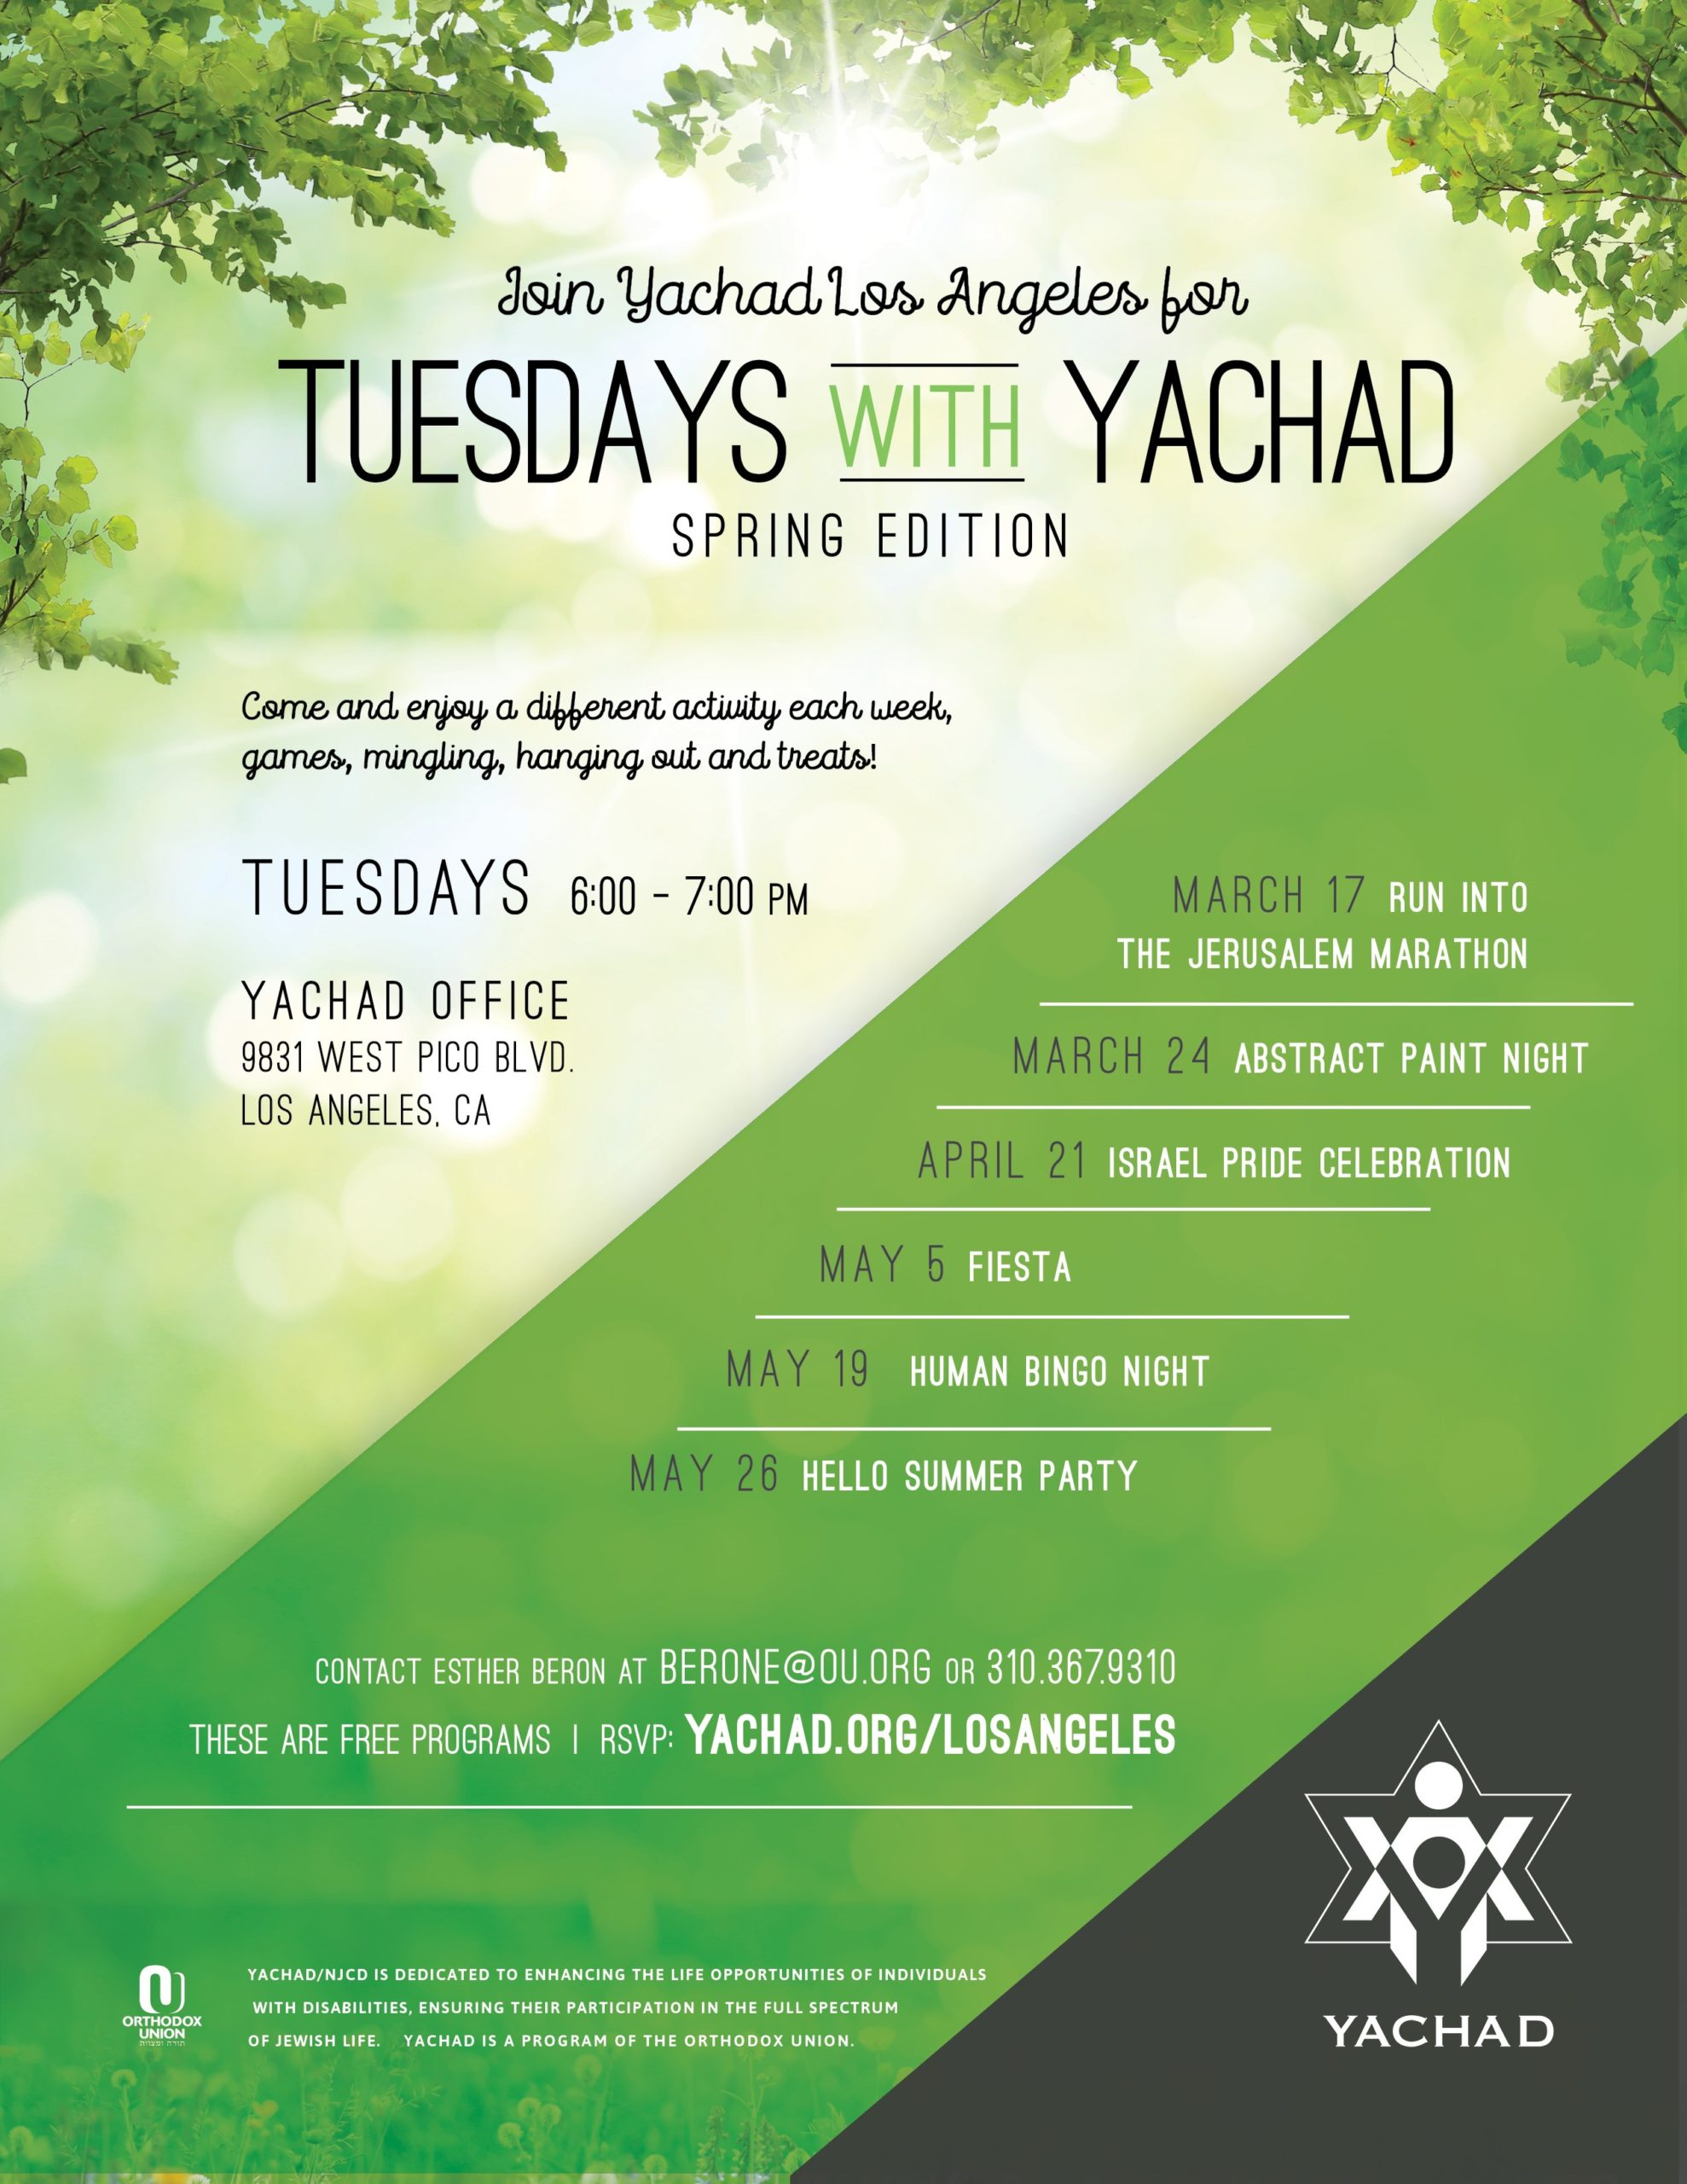 Tuesdays with Yachad | HaMercaz | The Jewish Federation of Greater Los Angeles